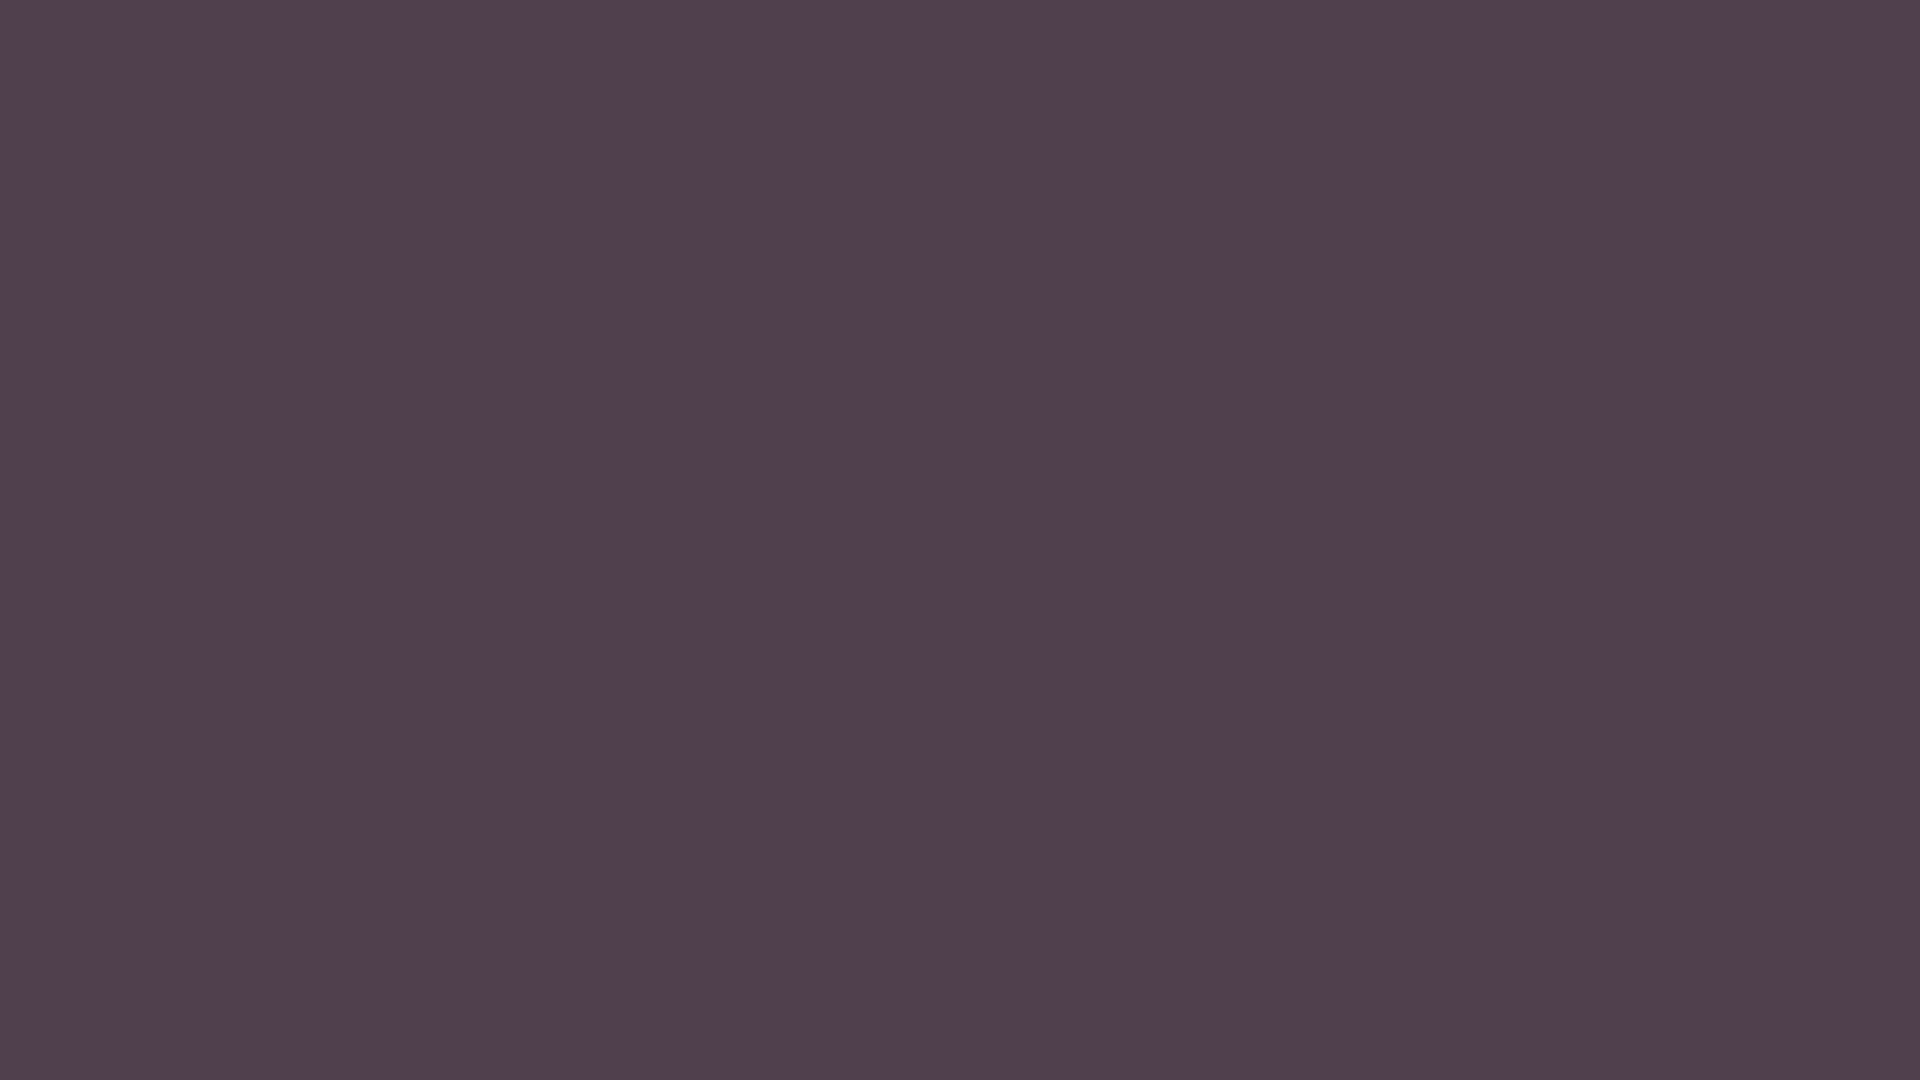 1920x1080 Purple Taupe Solid Color Background